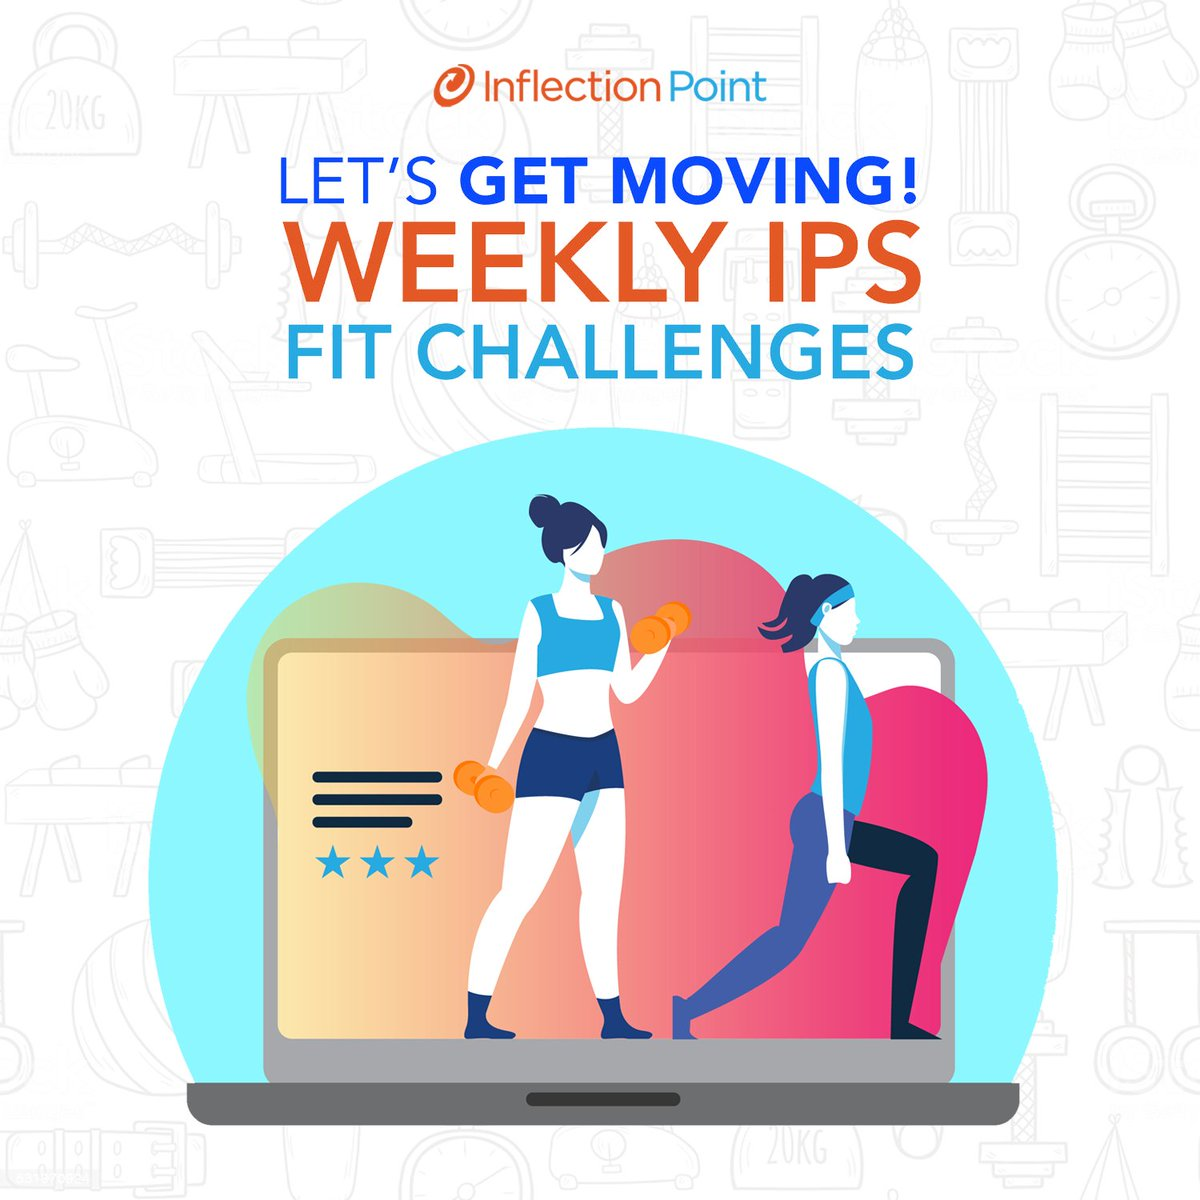 We close another week of our Weekly IPS Fit Challenges! 💪🏻 We've seen amazing results by keeping active! Keep the good work, team! 🏋🏻‍♂️ #WeAreIPS https://t.co/YFYsy16rH0